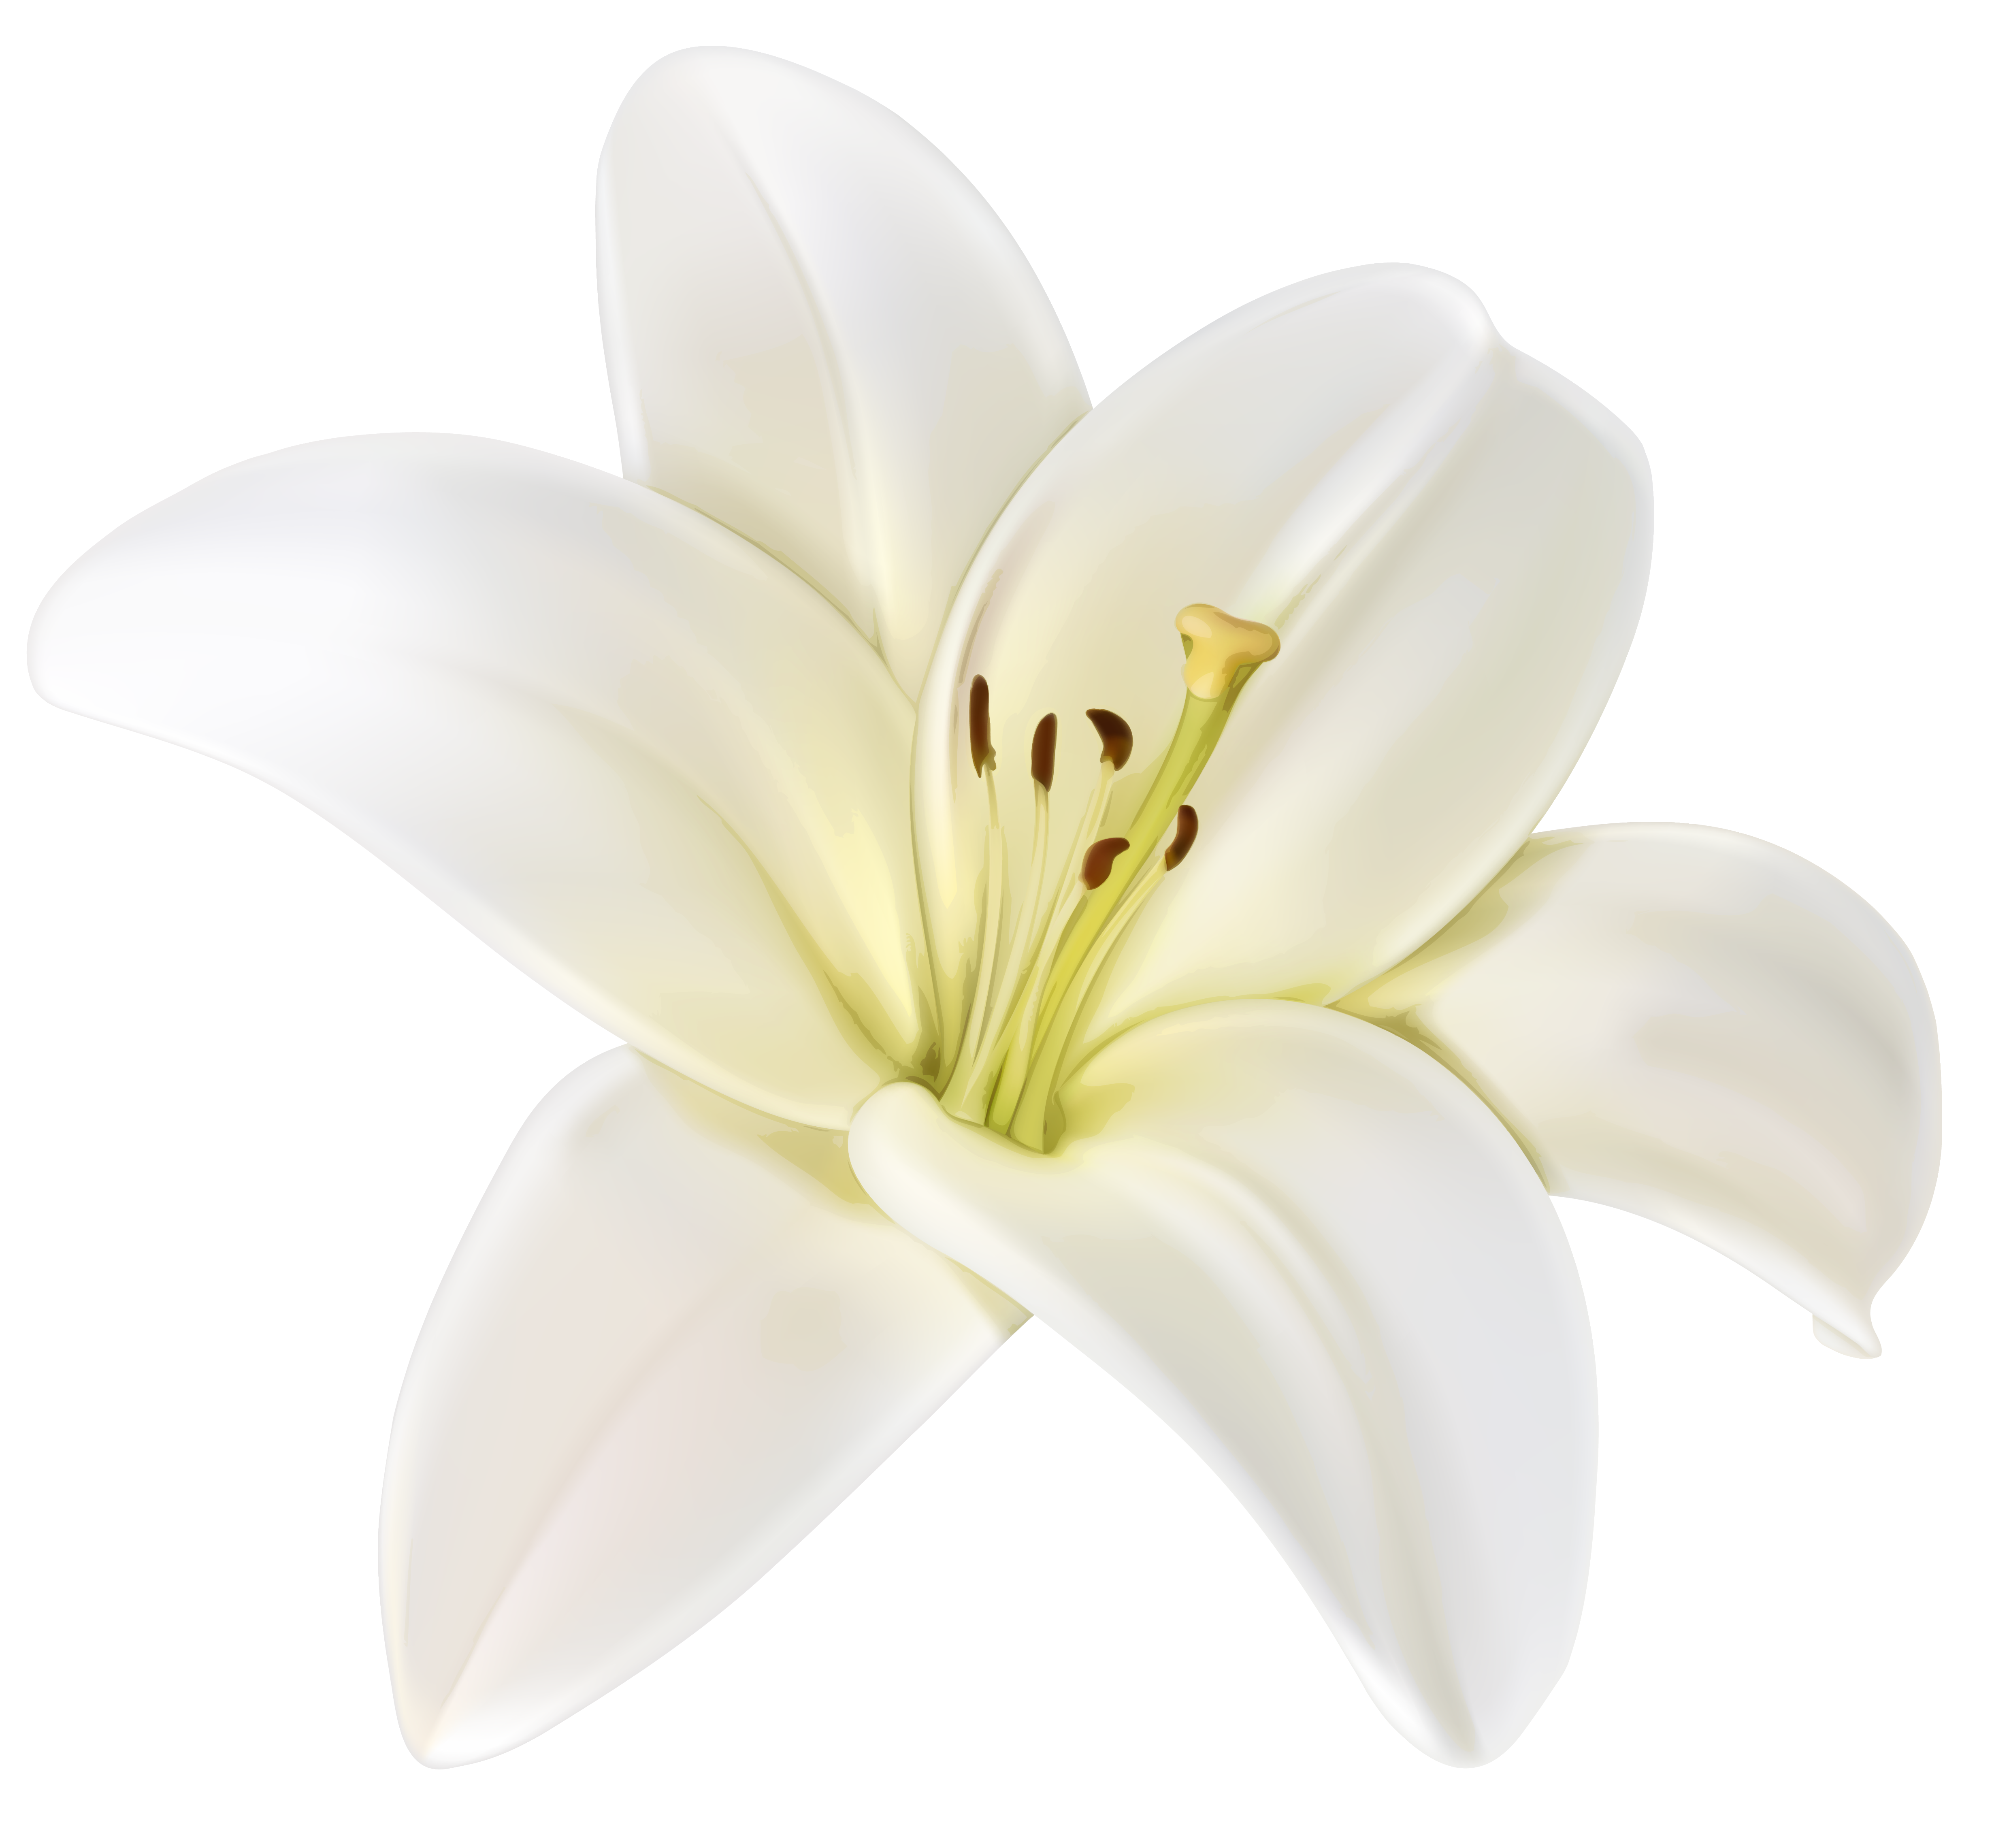 White flower png. Beautiful clipart image gallery